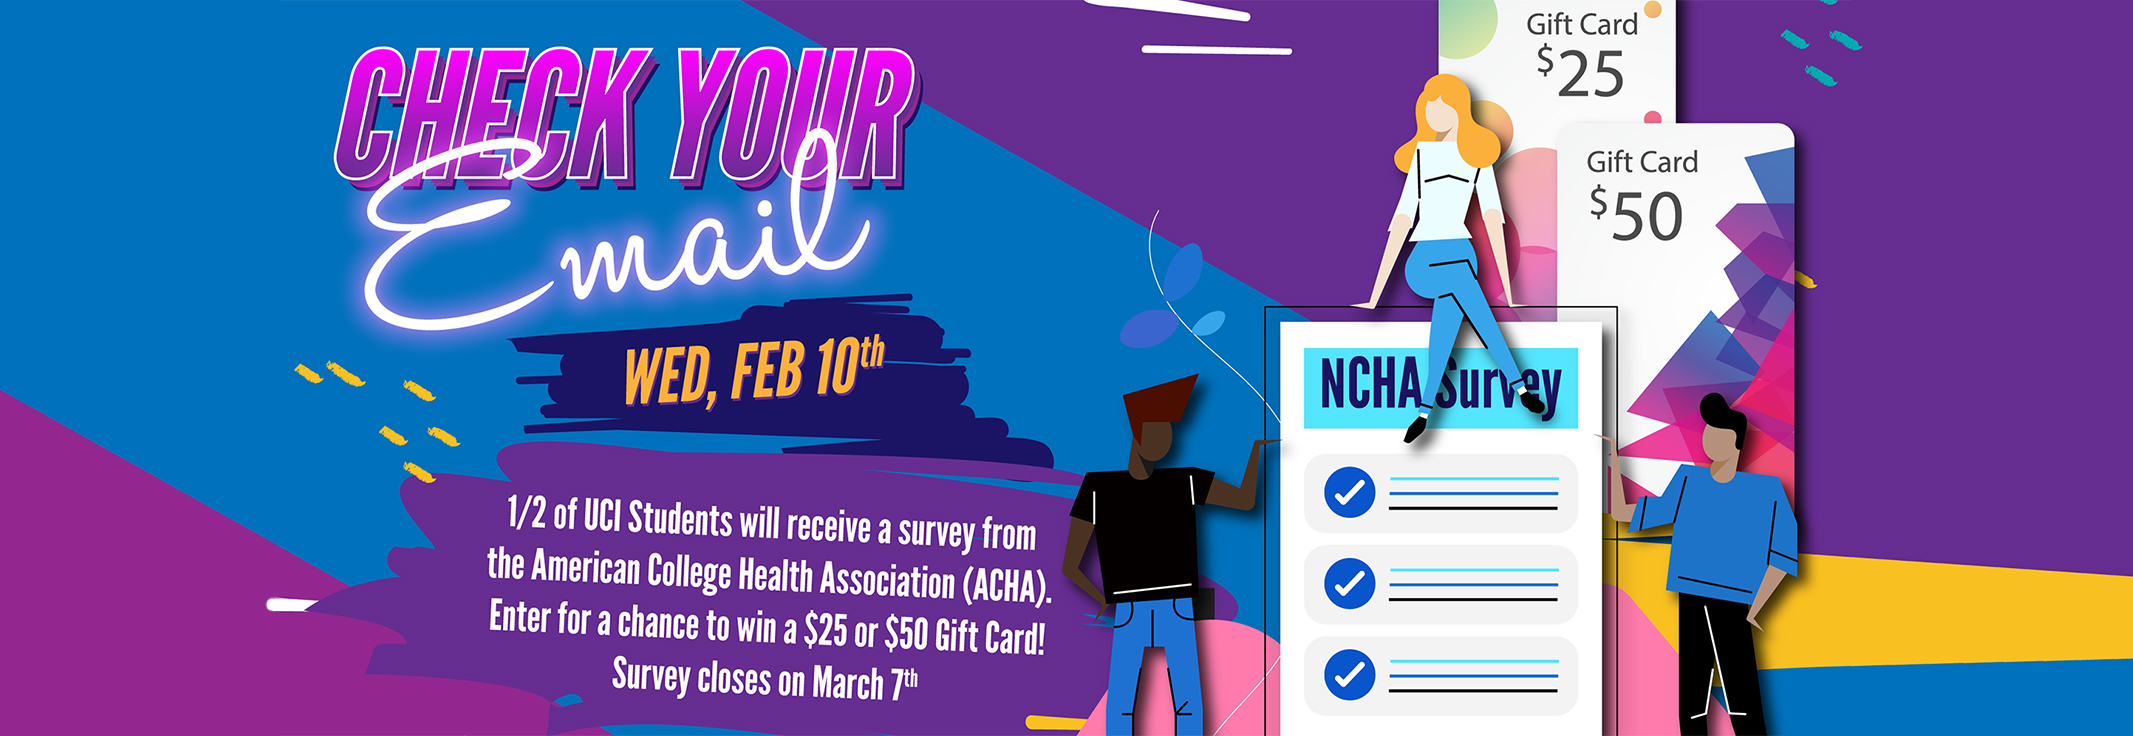 Check your email Wed, Feb 10th - 1/2 of UCI Students will received a survey from the American College Health Association. Enter for a chance to win a $25 or $50 Gift Card! Survey closed on March 7th